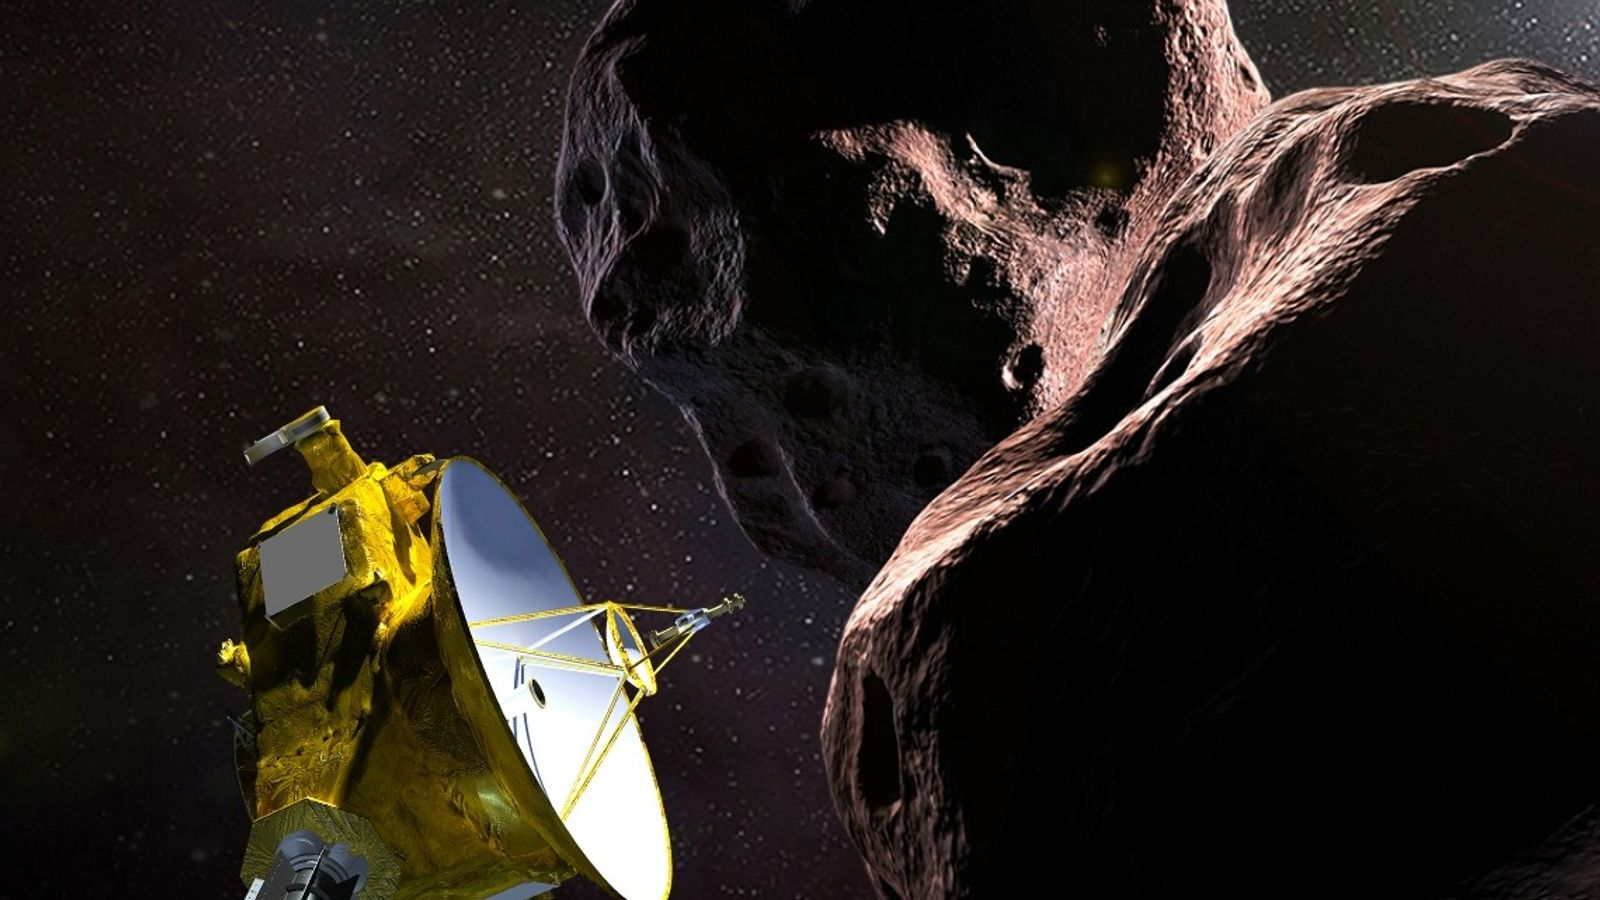 NASA's New Horizons spacecraft encounters 2014 MU69, a small world also nicknamed Ultima Thule, in an ...